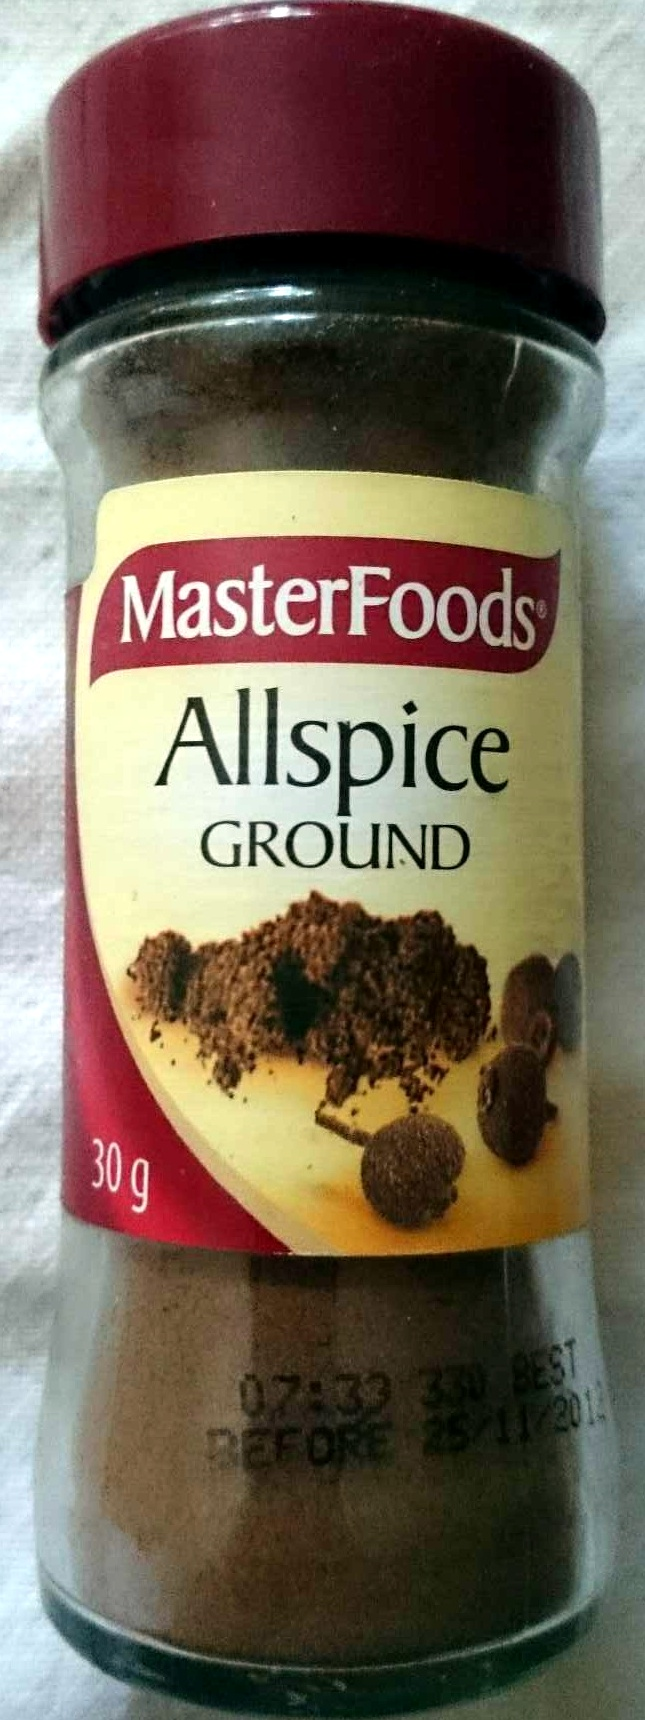 Allspice Ground - Product - en